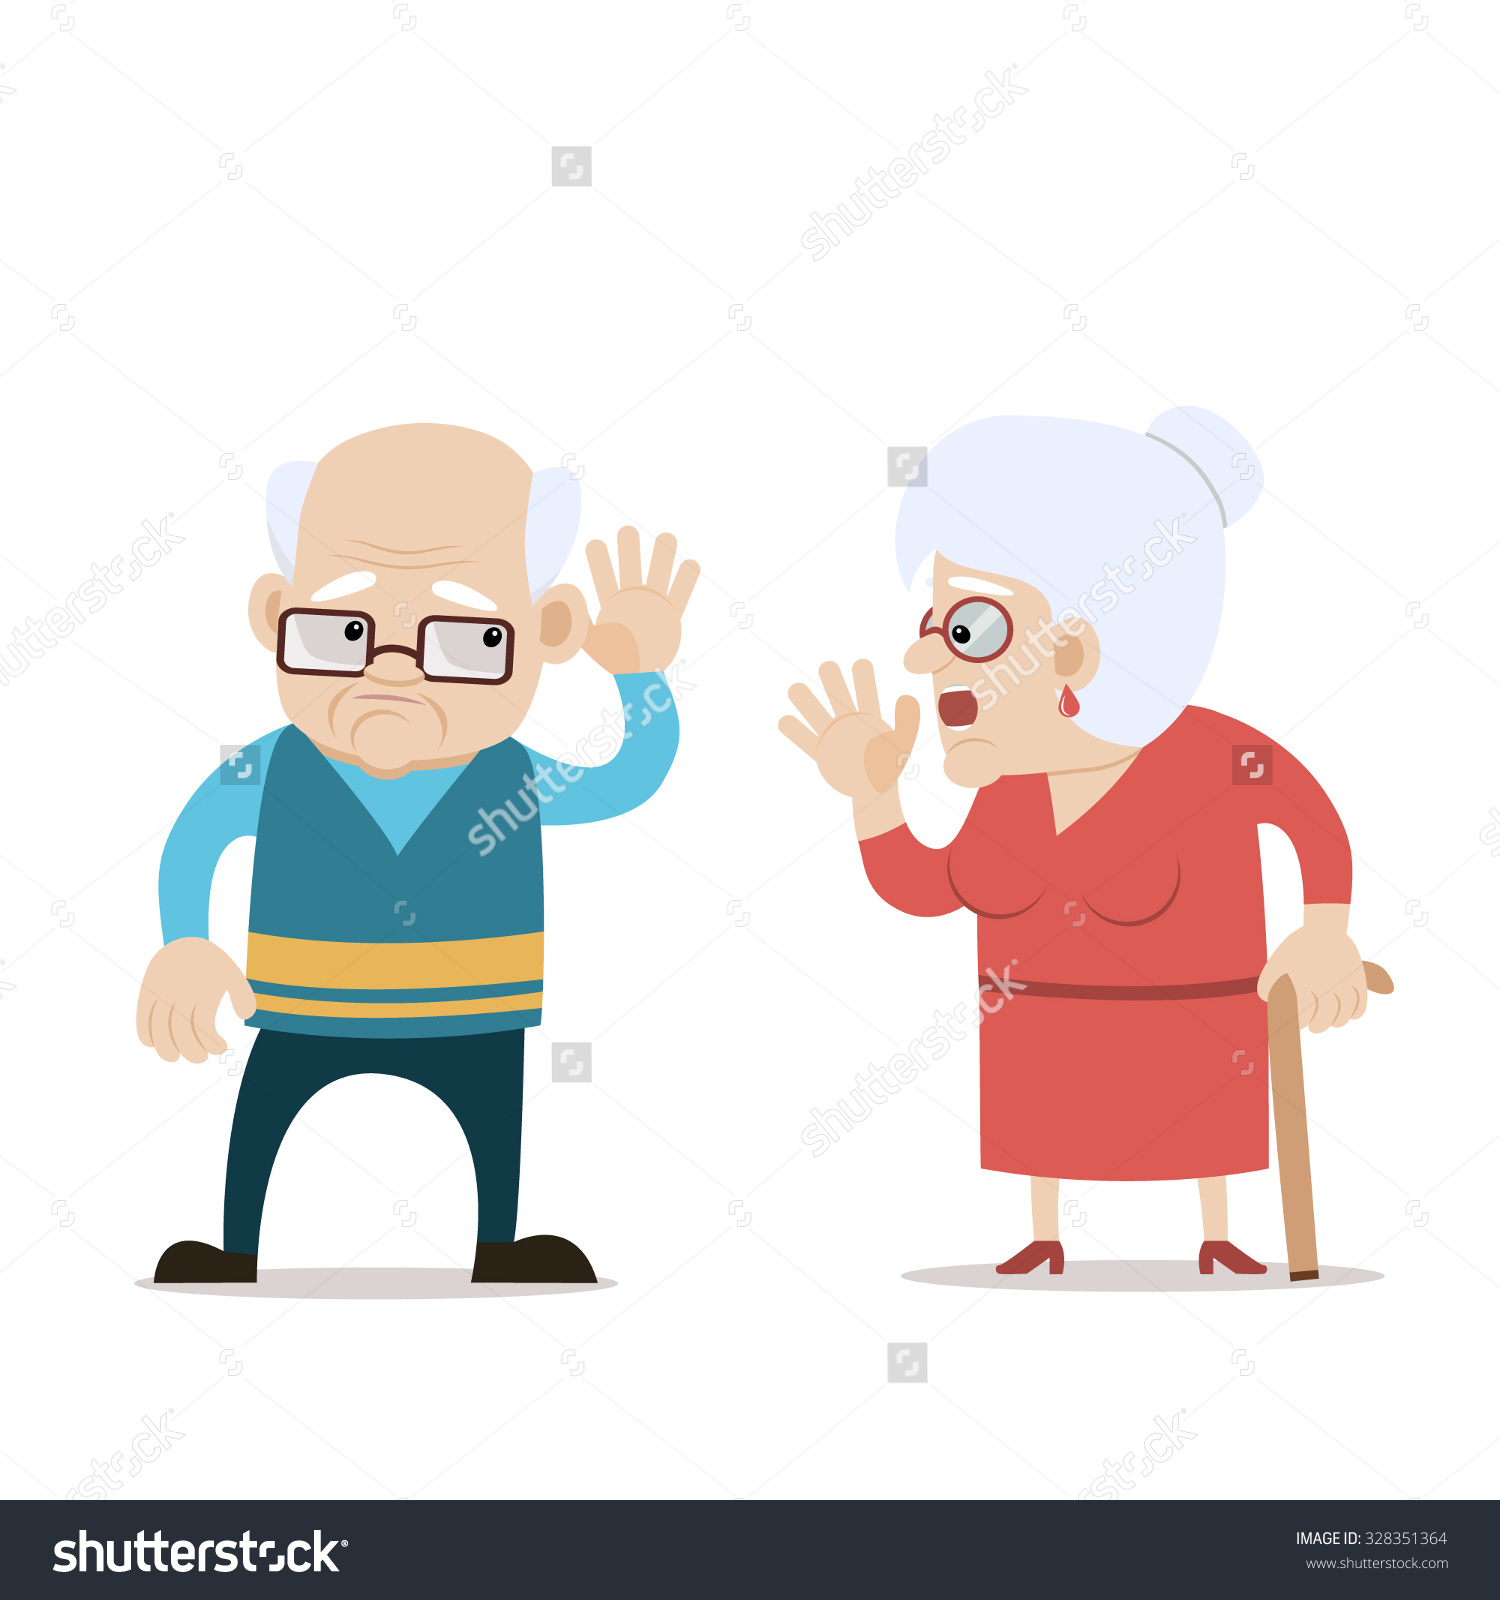 Old man hard of hearing clipart.